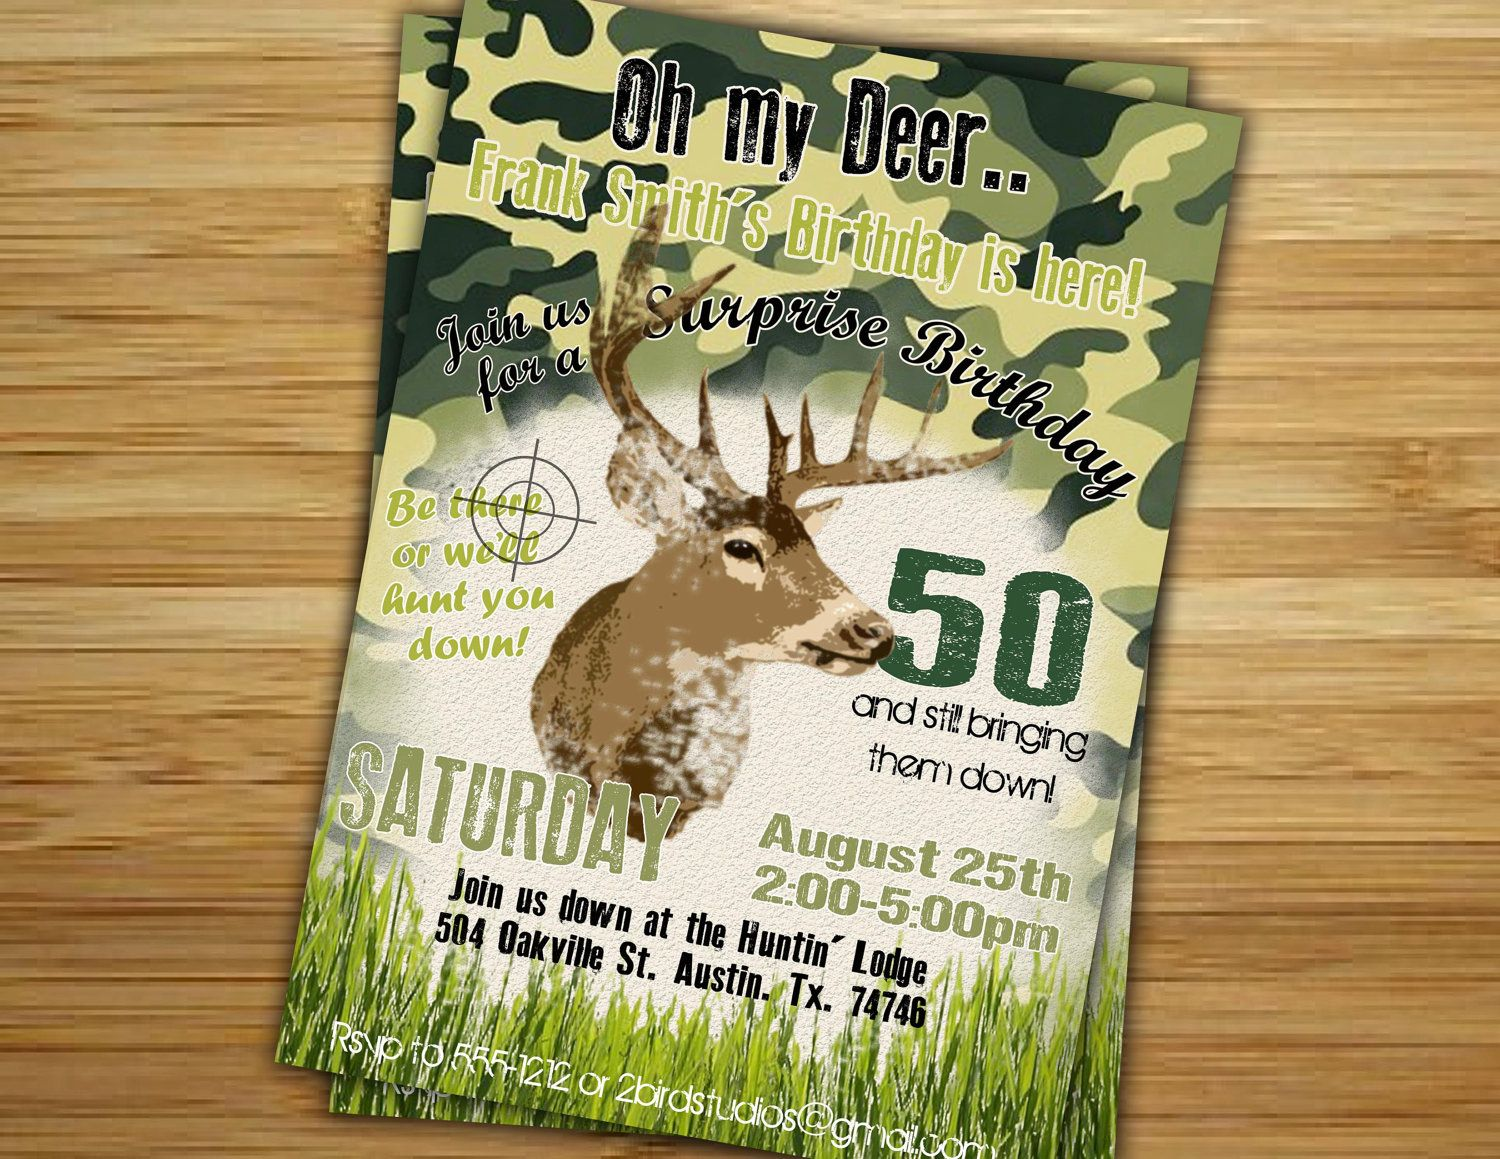 50th birthday party invitations Google Search Cool stuff